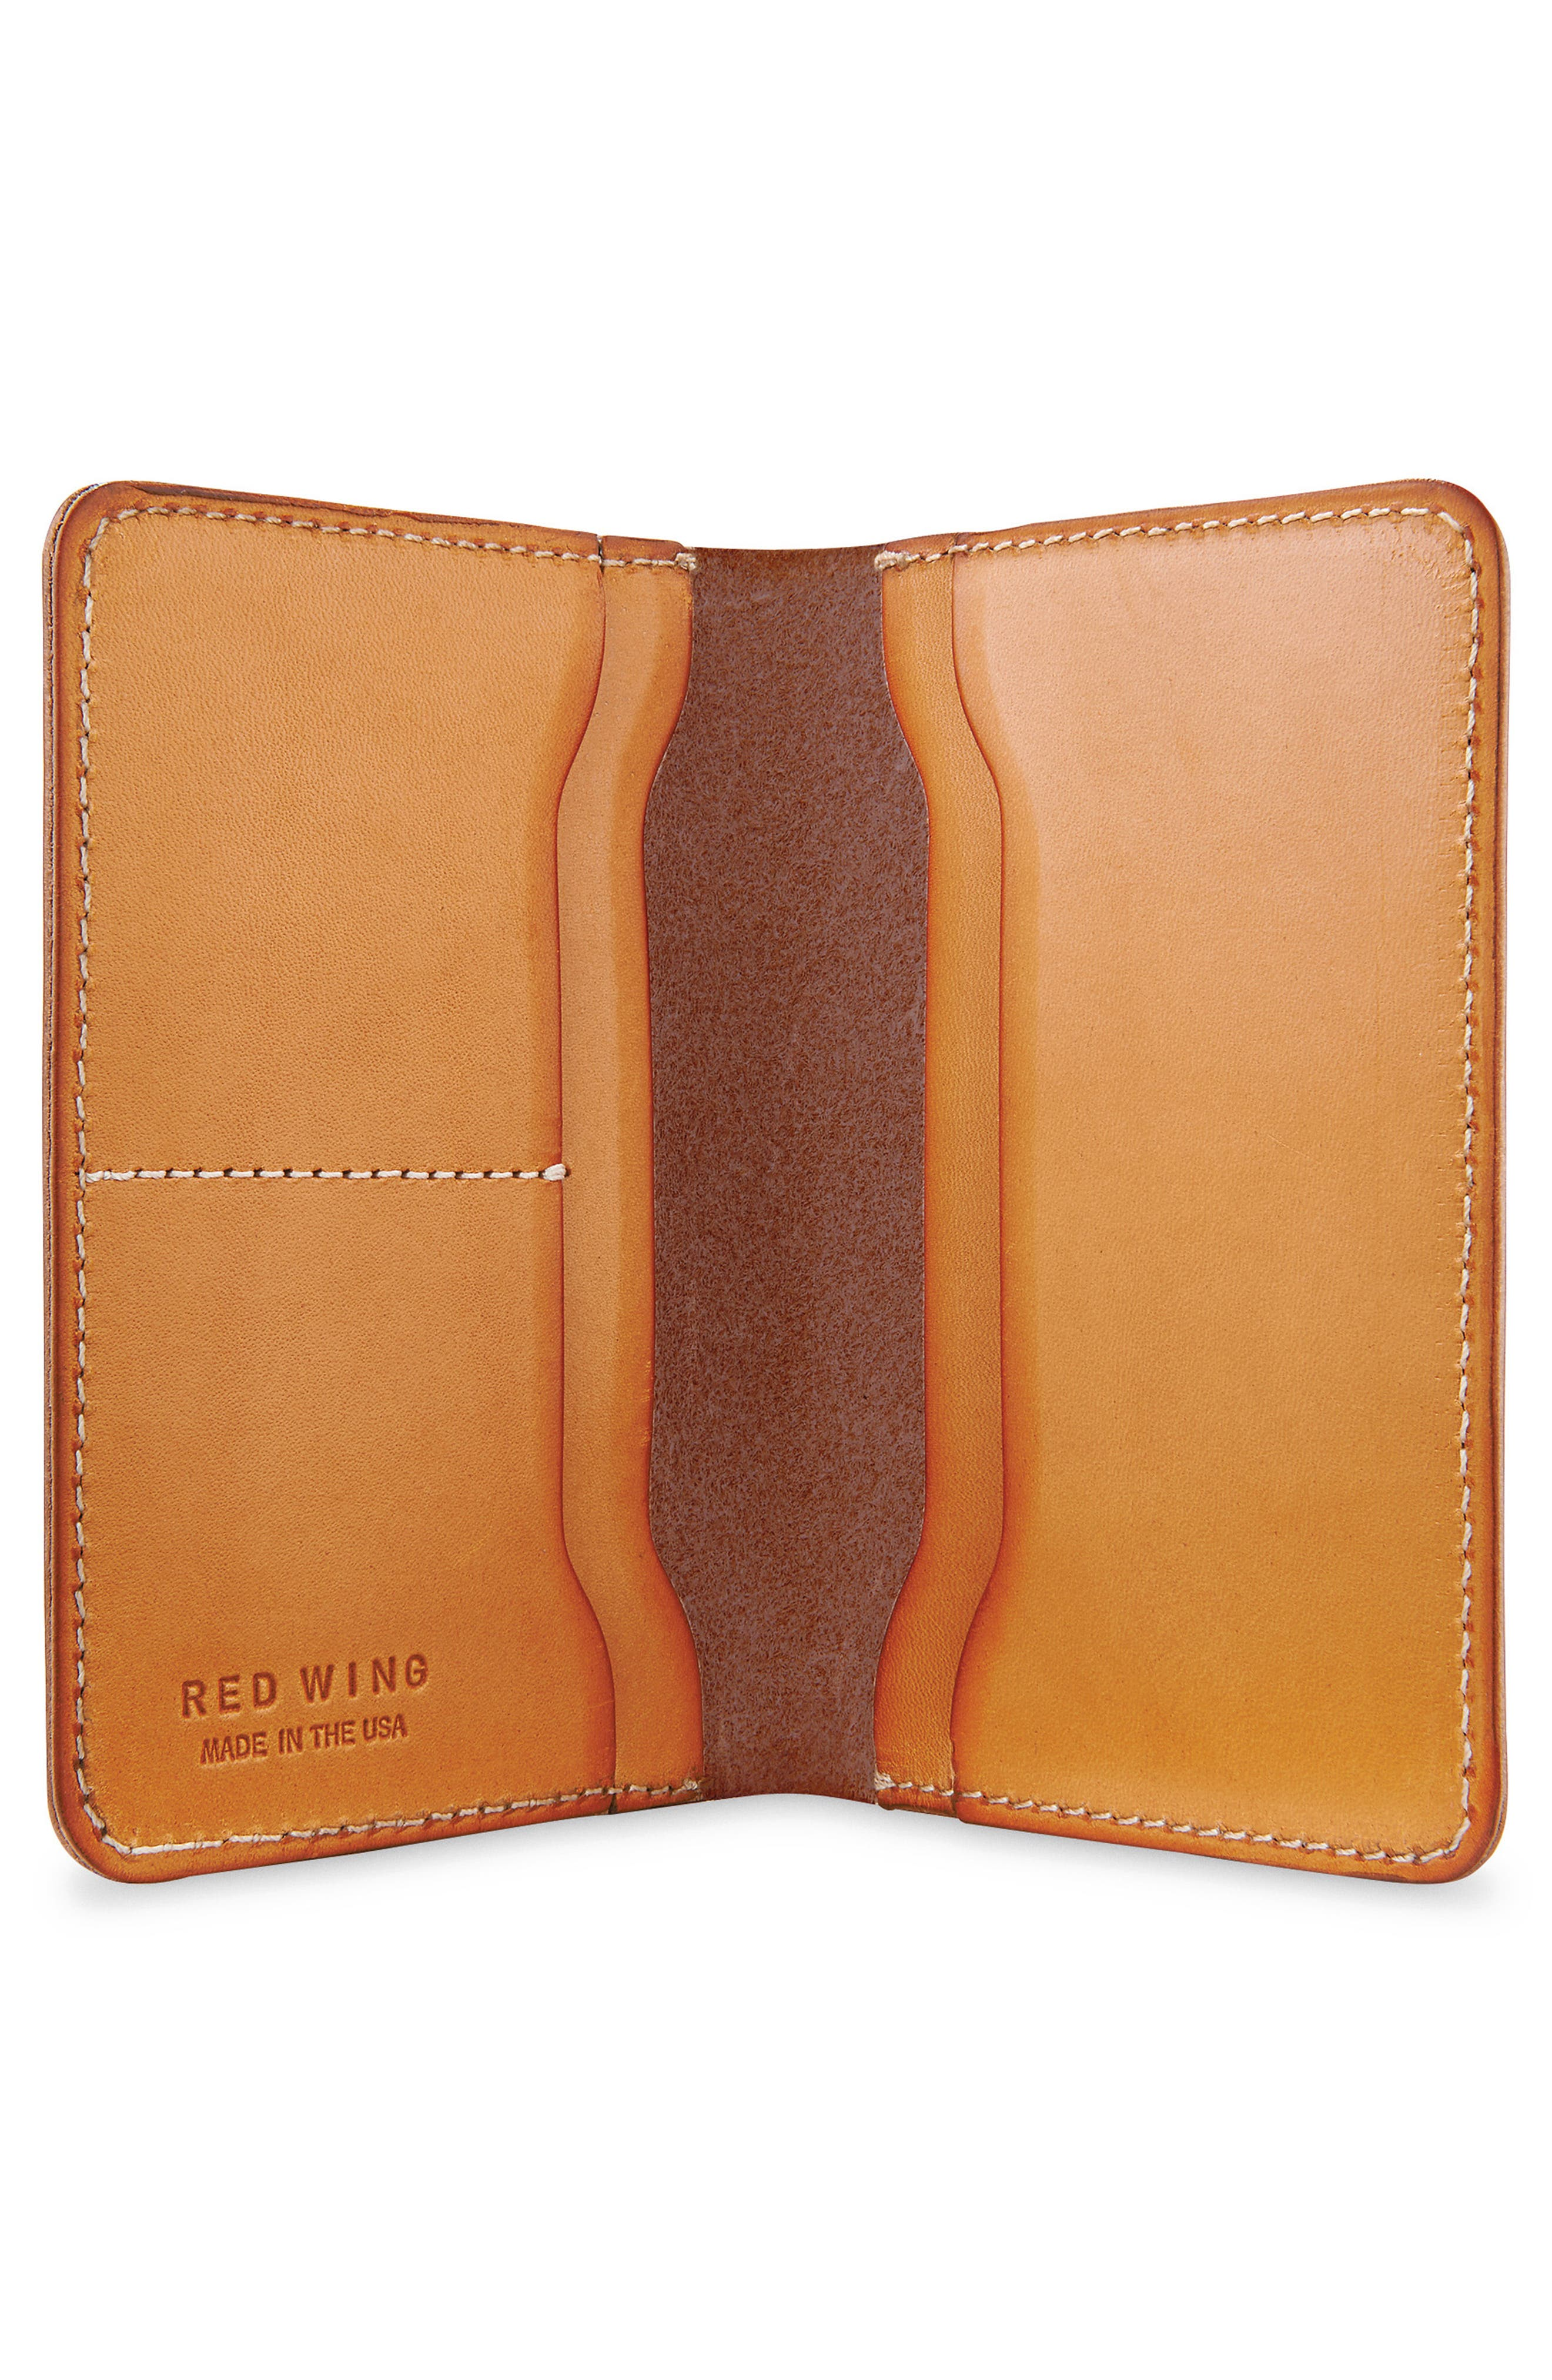 Leather Passport Wallet,                             Alternate thumbnail 2, color,                             Tanned Vegetable